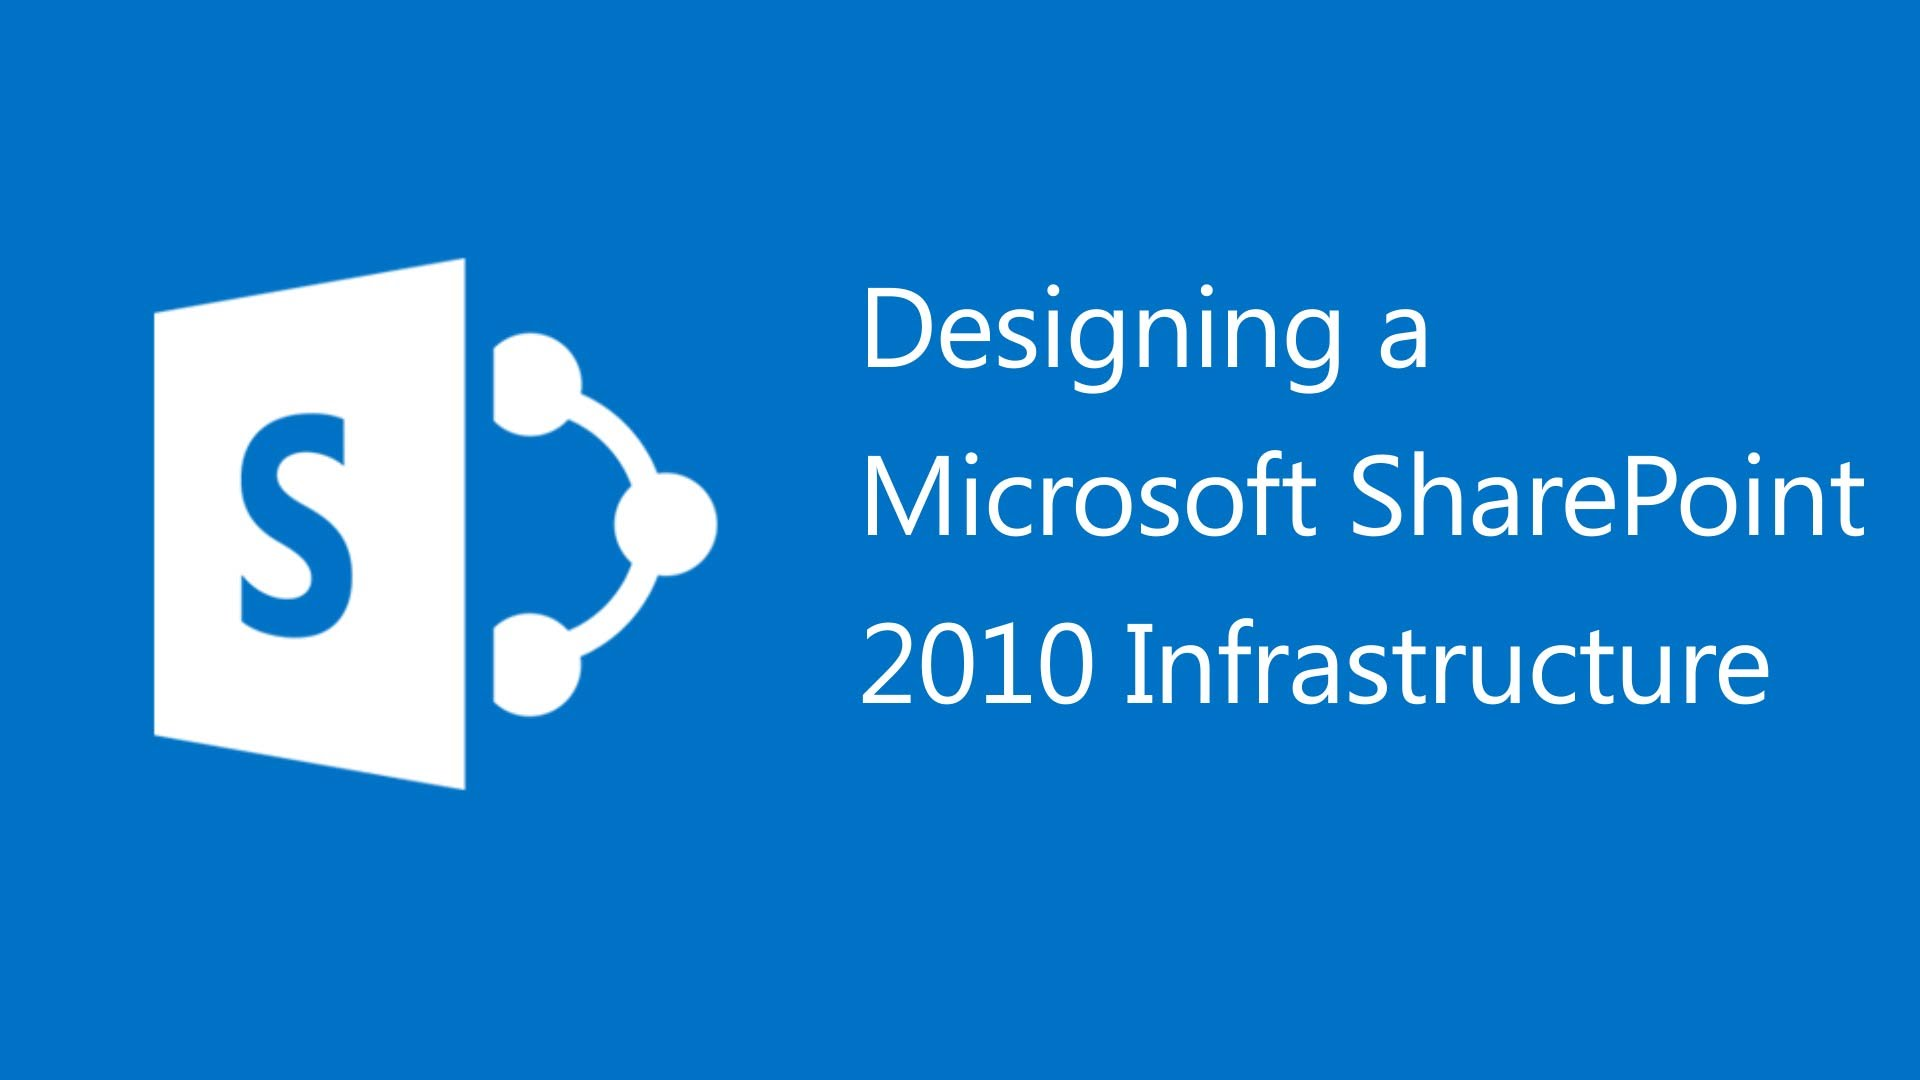 Designing-microsfot-sharepoint-infrastructure-course-cape-town-mastergrade-it.jpg